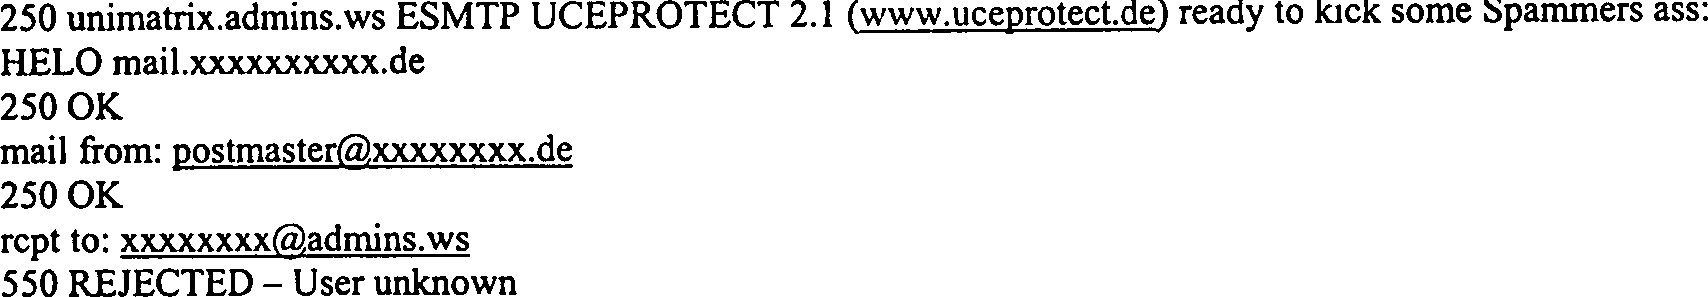 DE102004022881A1 - Authorization system for computer system